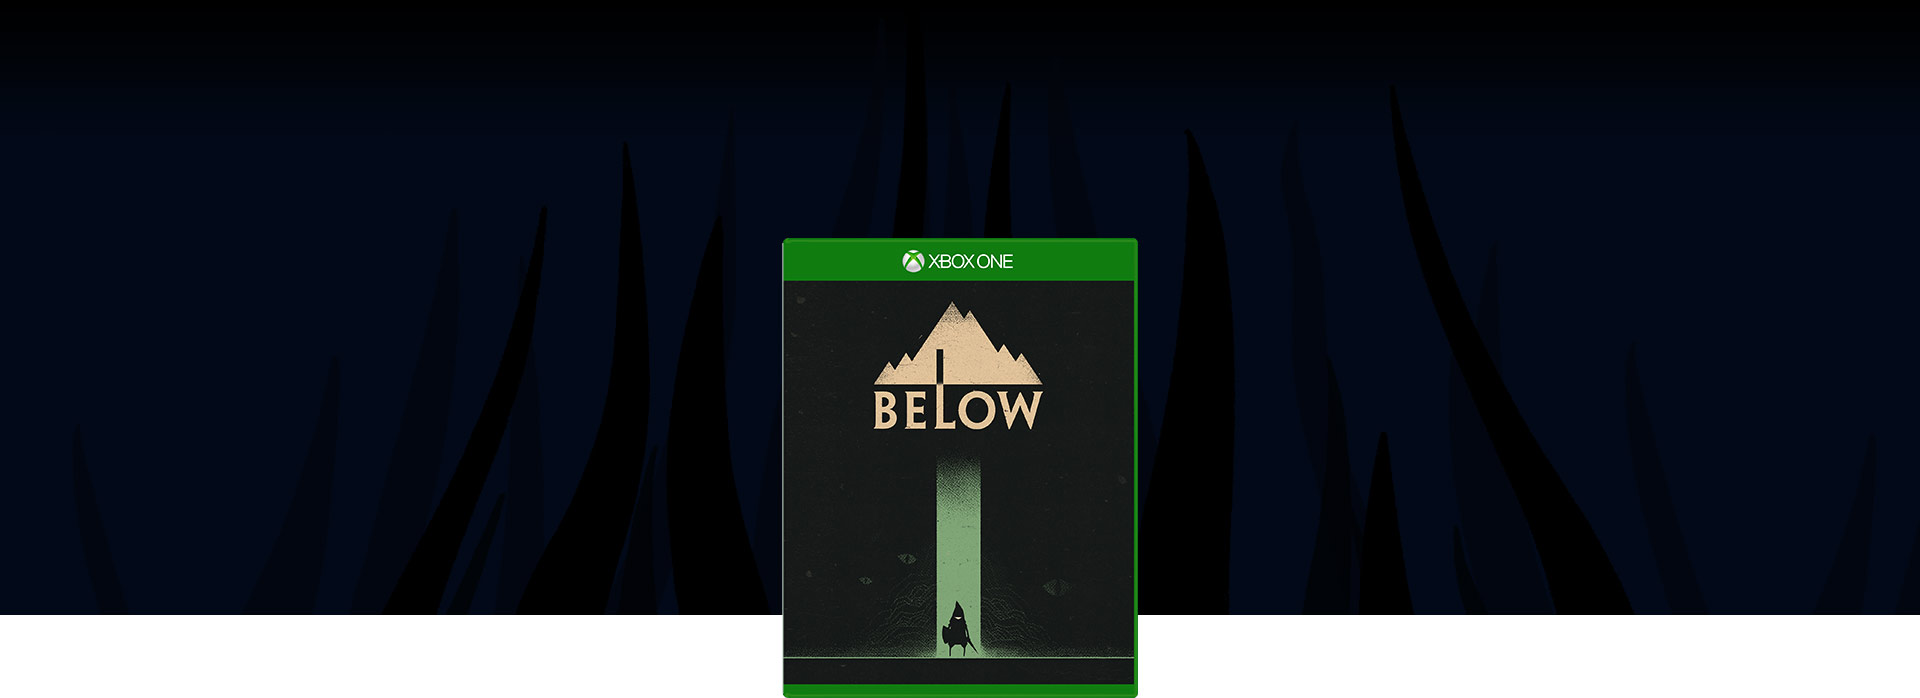 Tentakler med BELOW-coverbilde